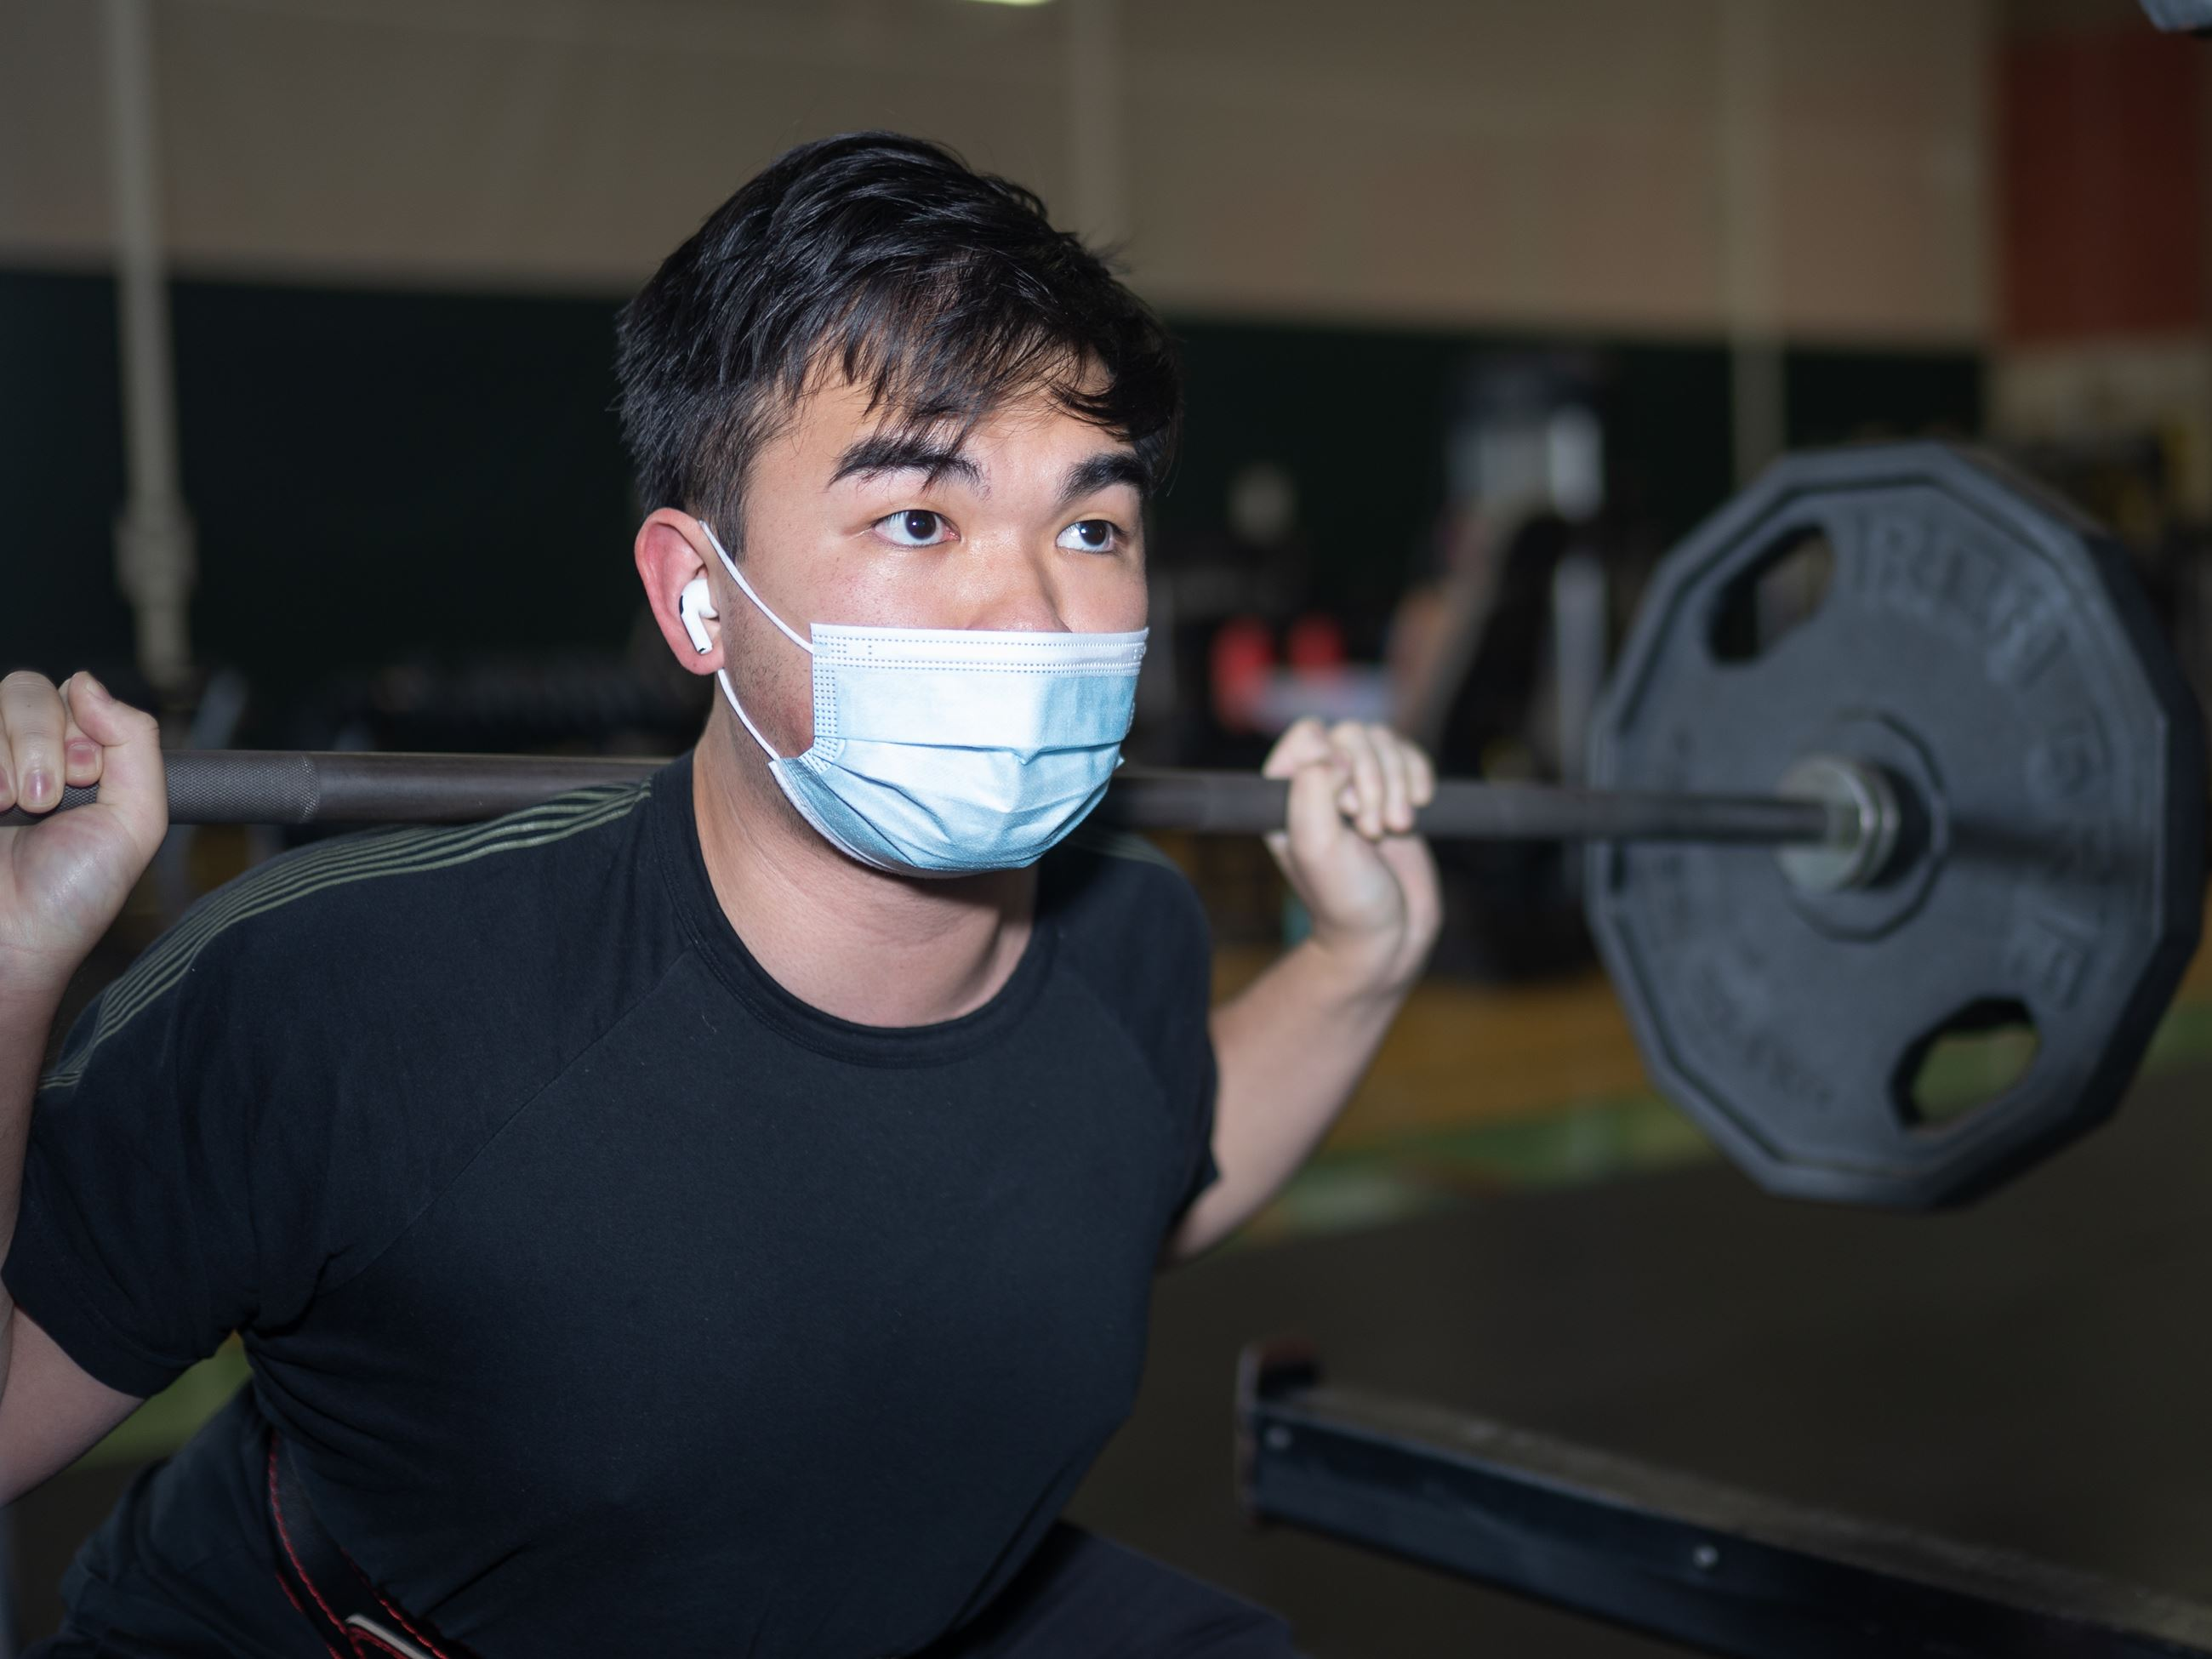 Man wearing a mask working out at the CRC